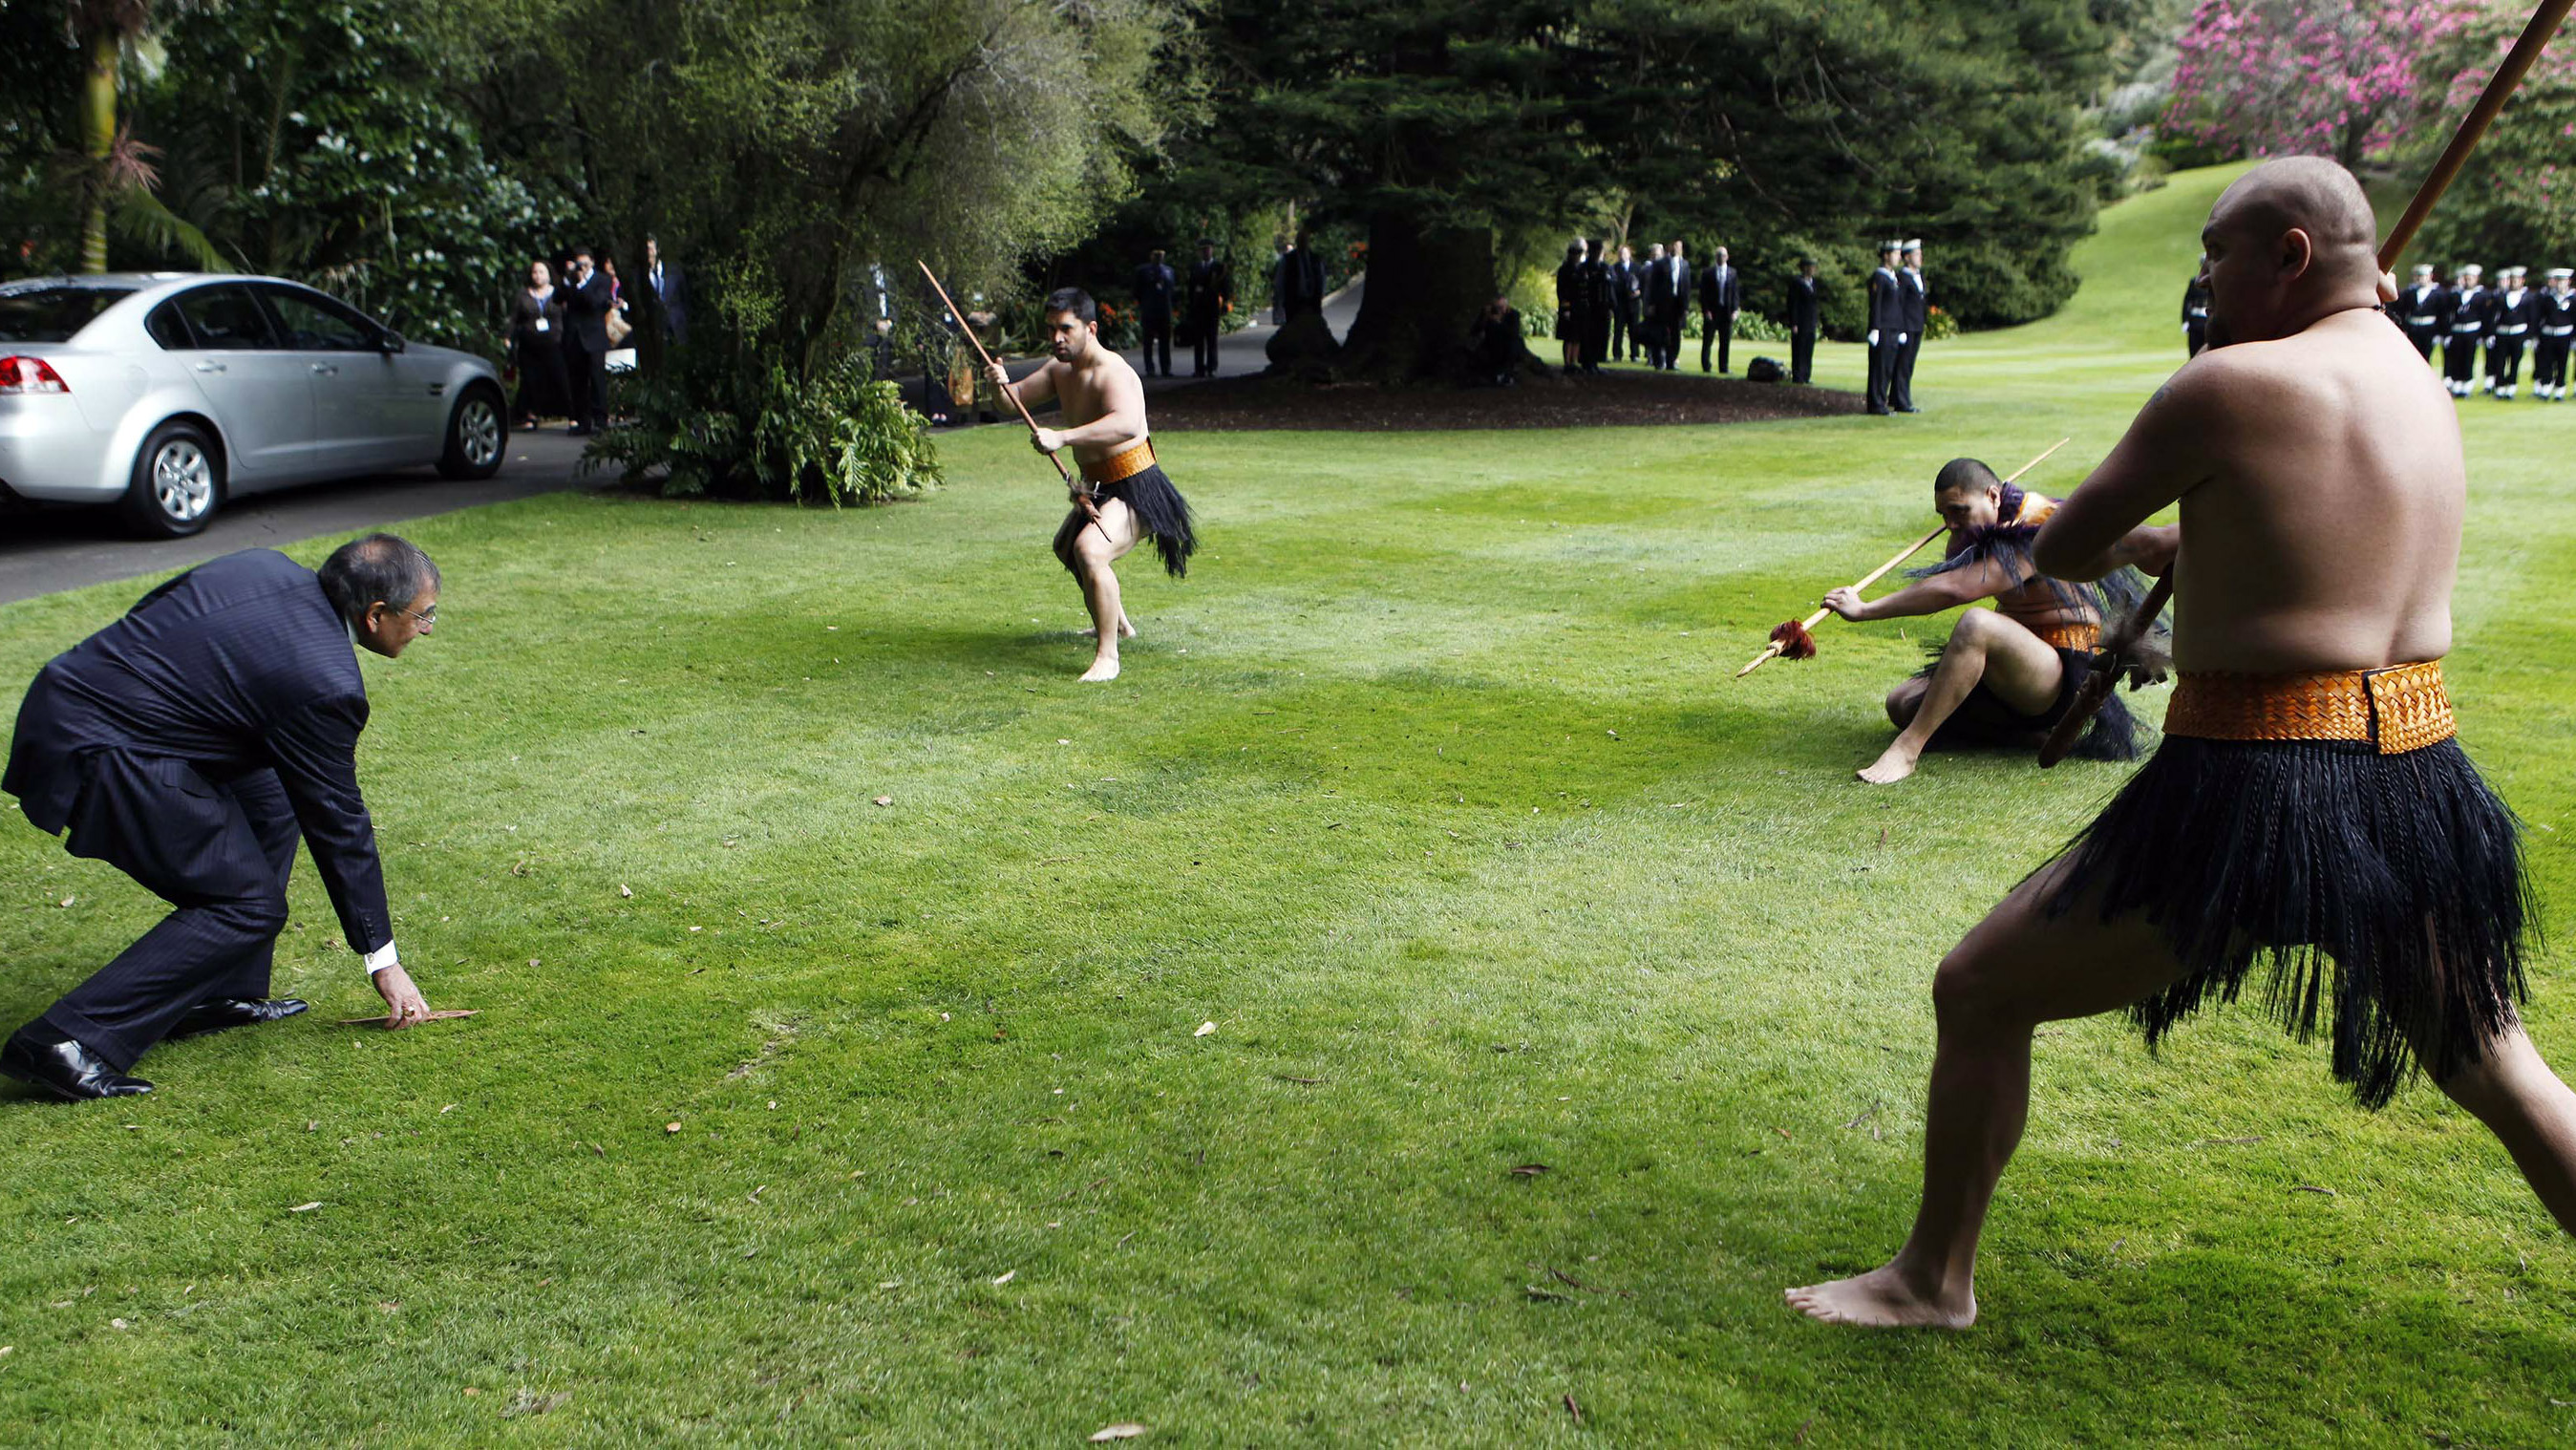 U.S. Defense Secretary Leon Panetta, left, picks up a dart during a Maori welcome ceremony at the Government House in Auckland, New Zealand on Friday.